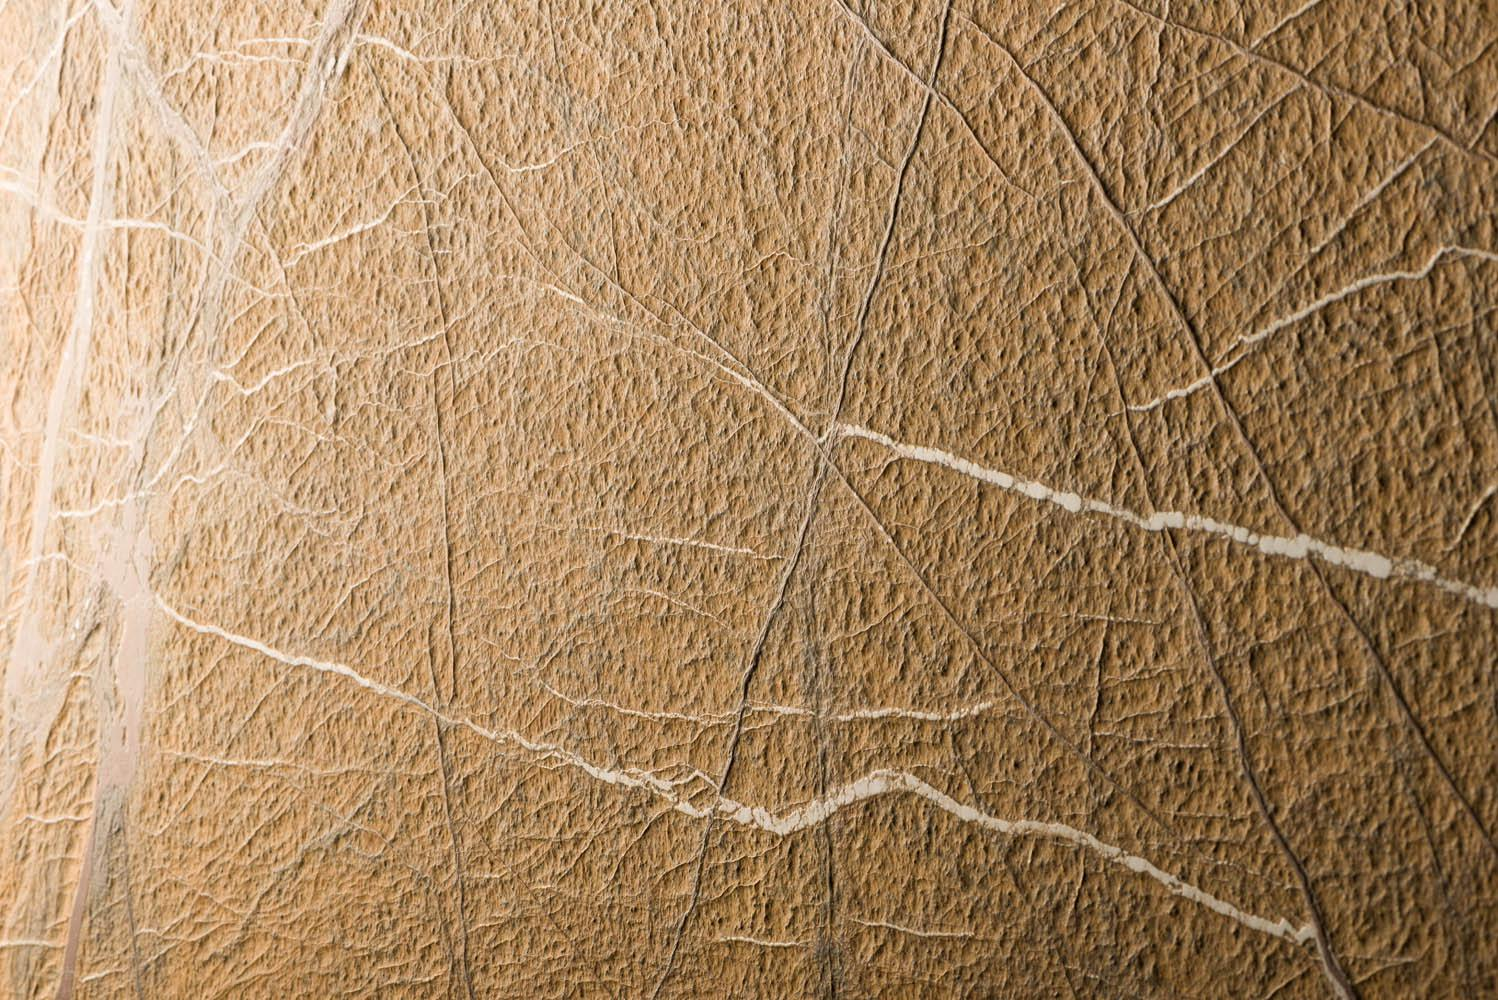 Rain Forest Brown THE BEAUTY AND THE INCREDIBLE DESIGN OF ITS VEINING